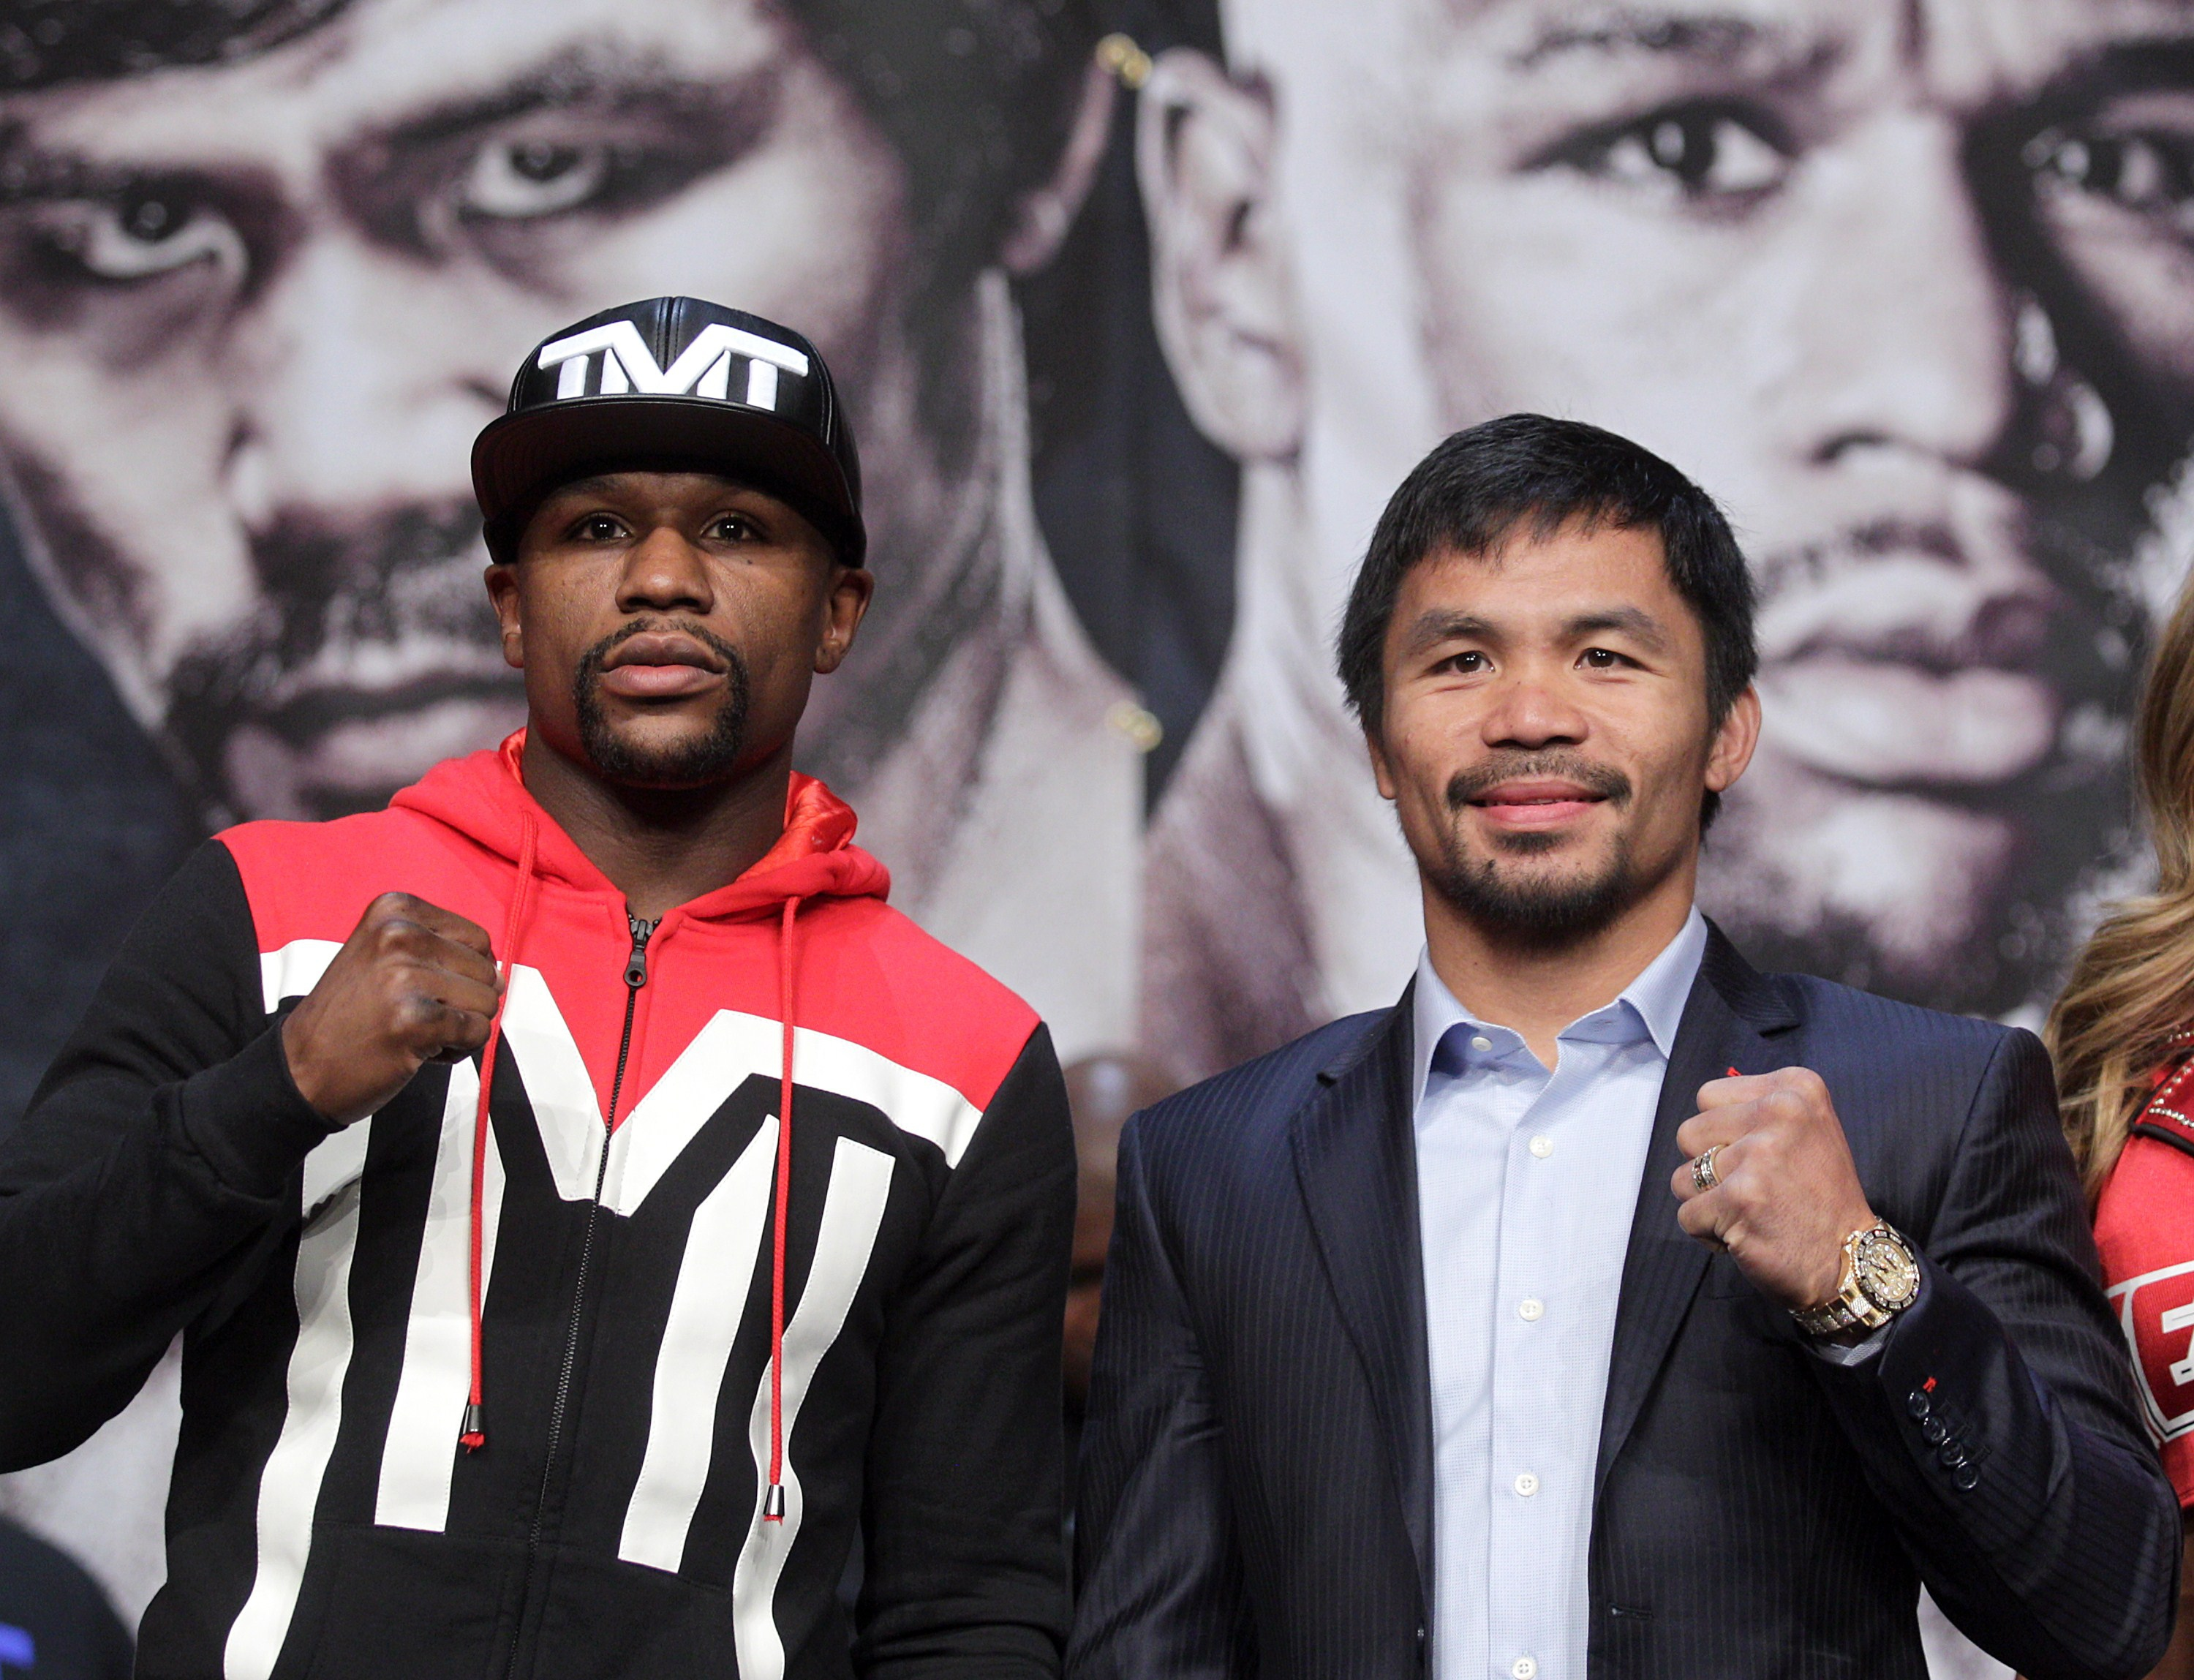 Enjoy it now, guys: Mayweather (left) and Pacquiao are heading for a pounding